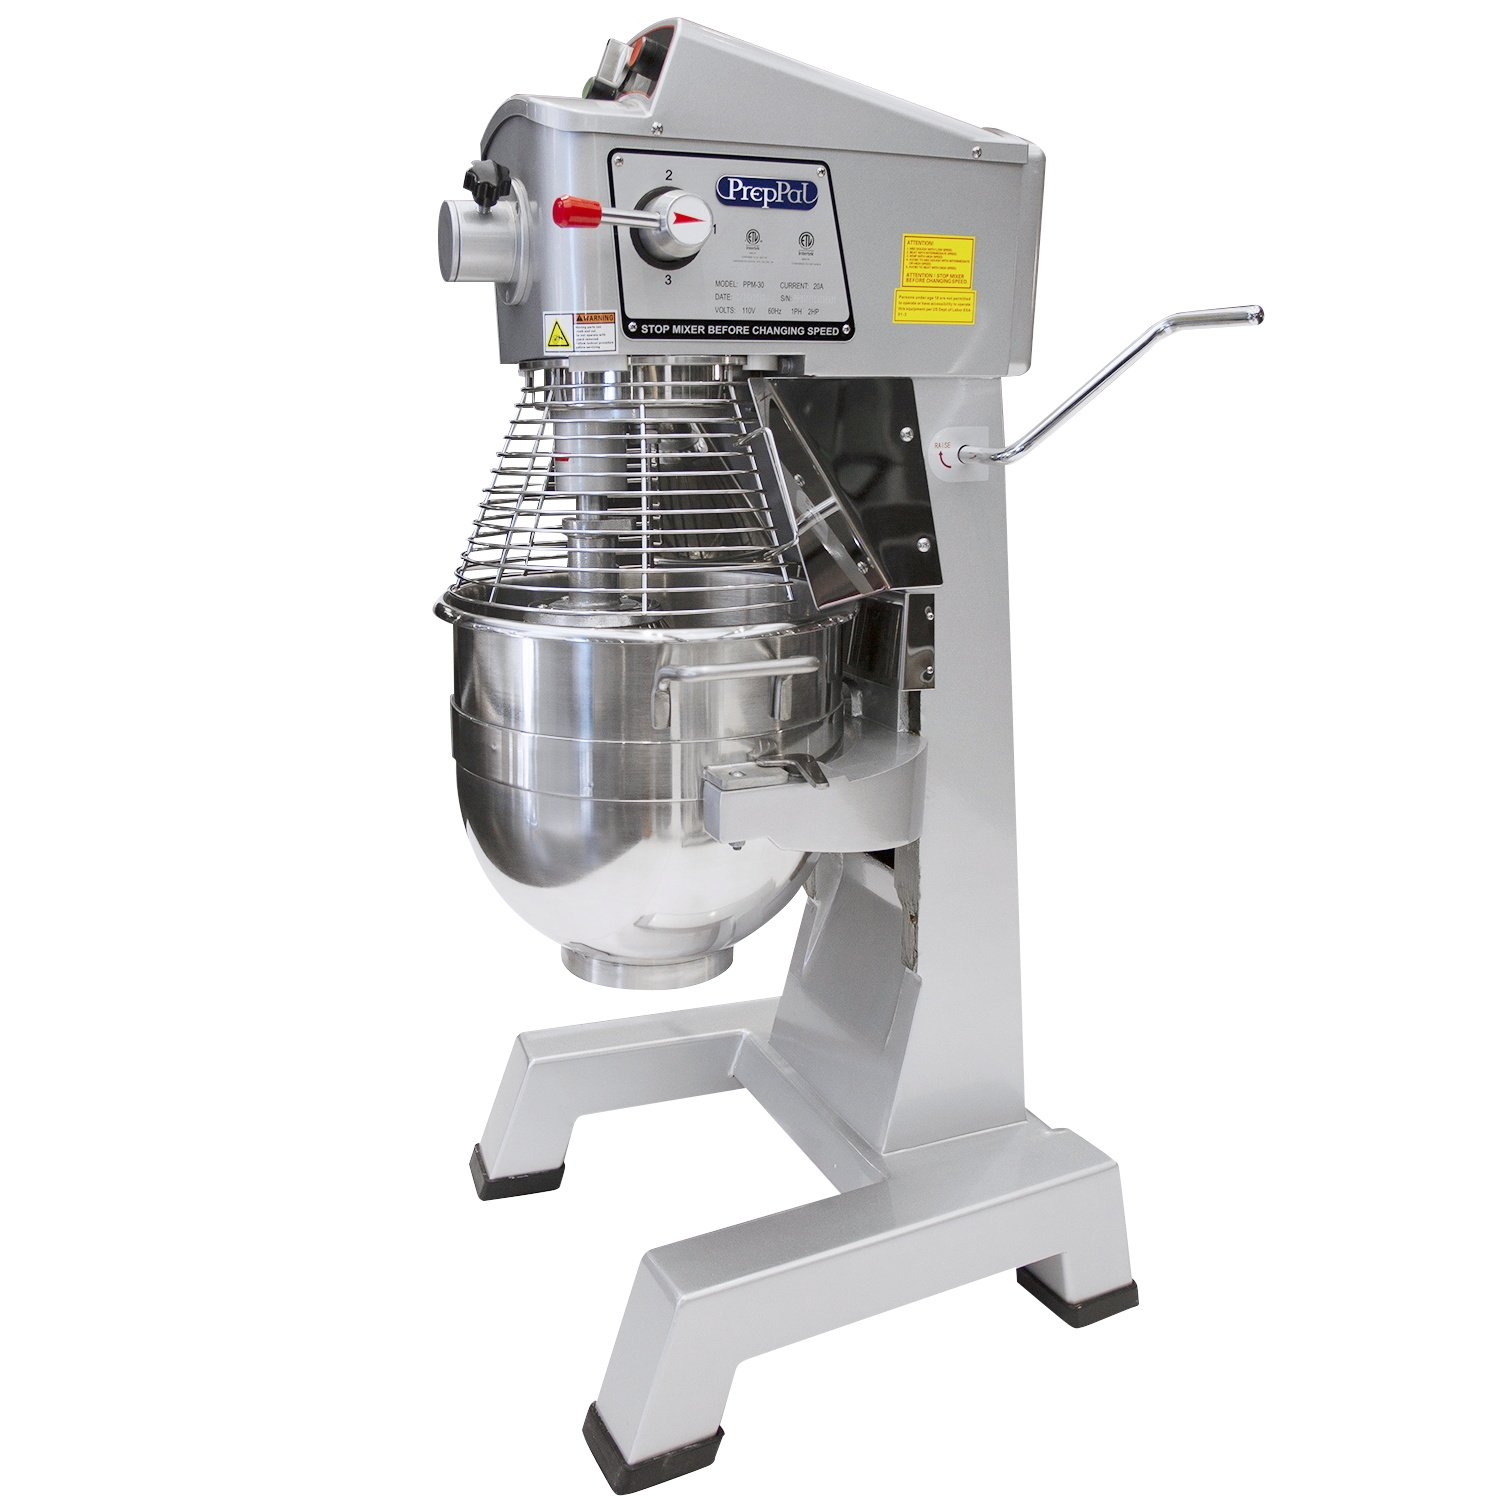 Bon Commercial Stainless Steel Food Mixer, 30 Quart PREPPAL PPM 30 Large Floor  Heavy Duty Mixer Stand Mixer With Bowl Lift   Walmart.com